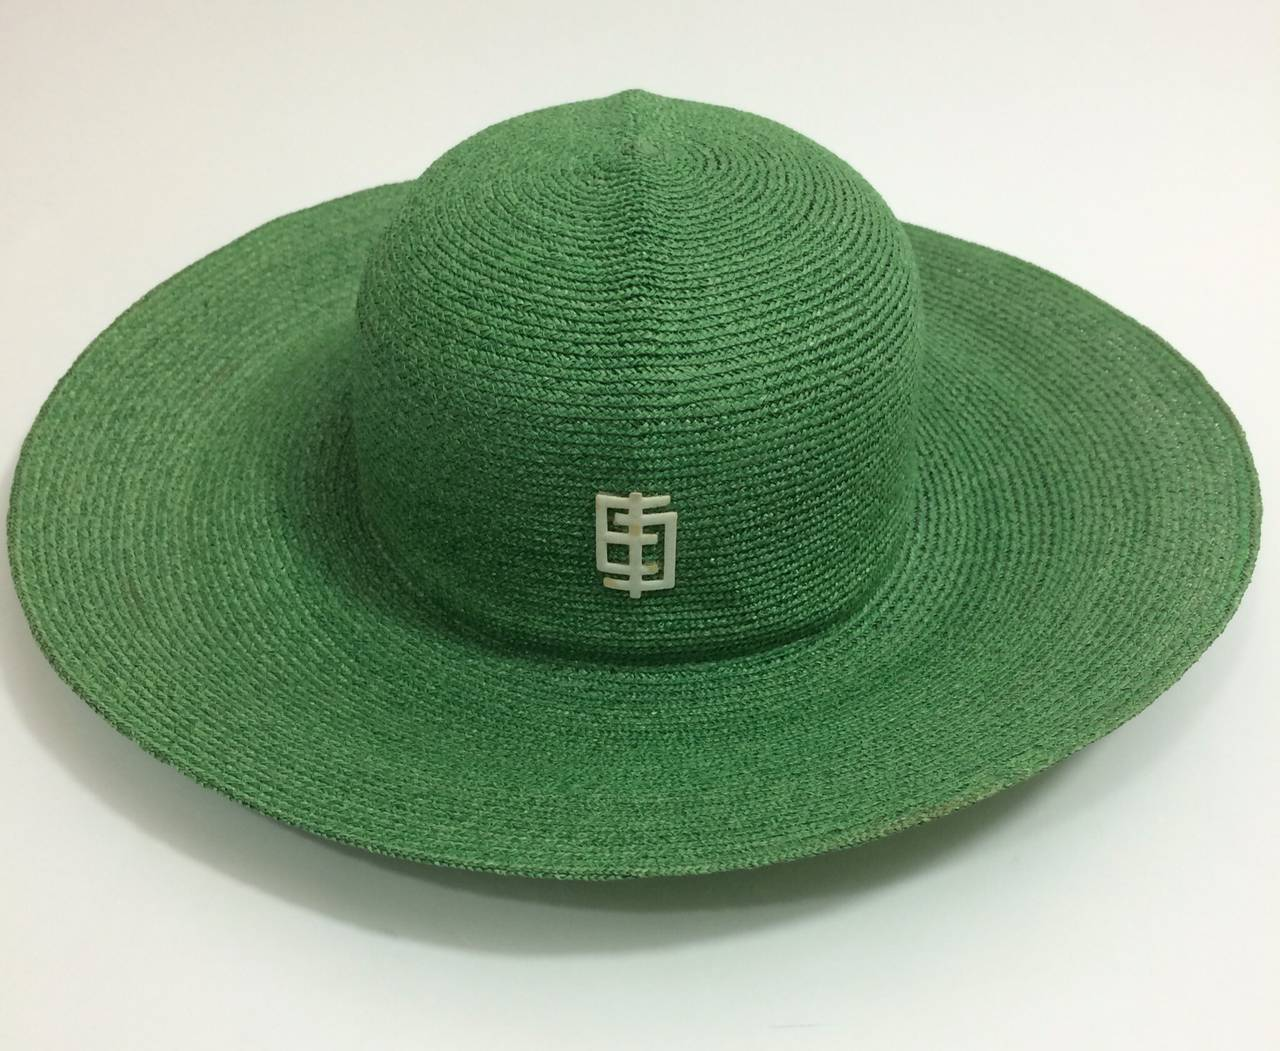 Vintage Pucci Green Sun Hat 2